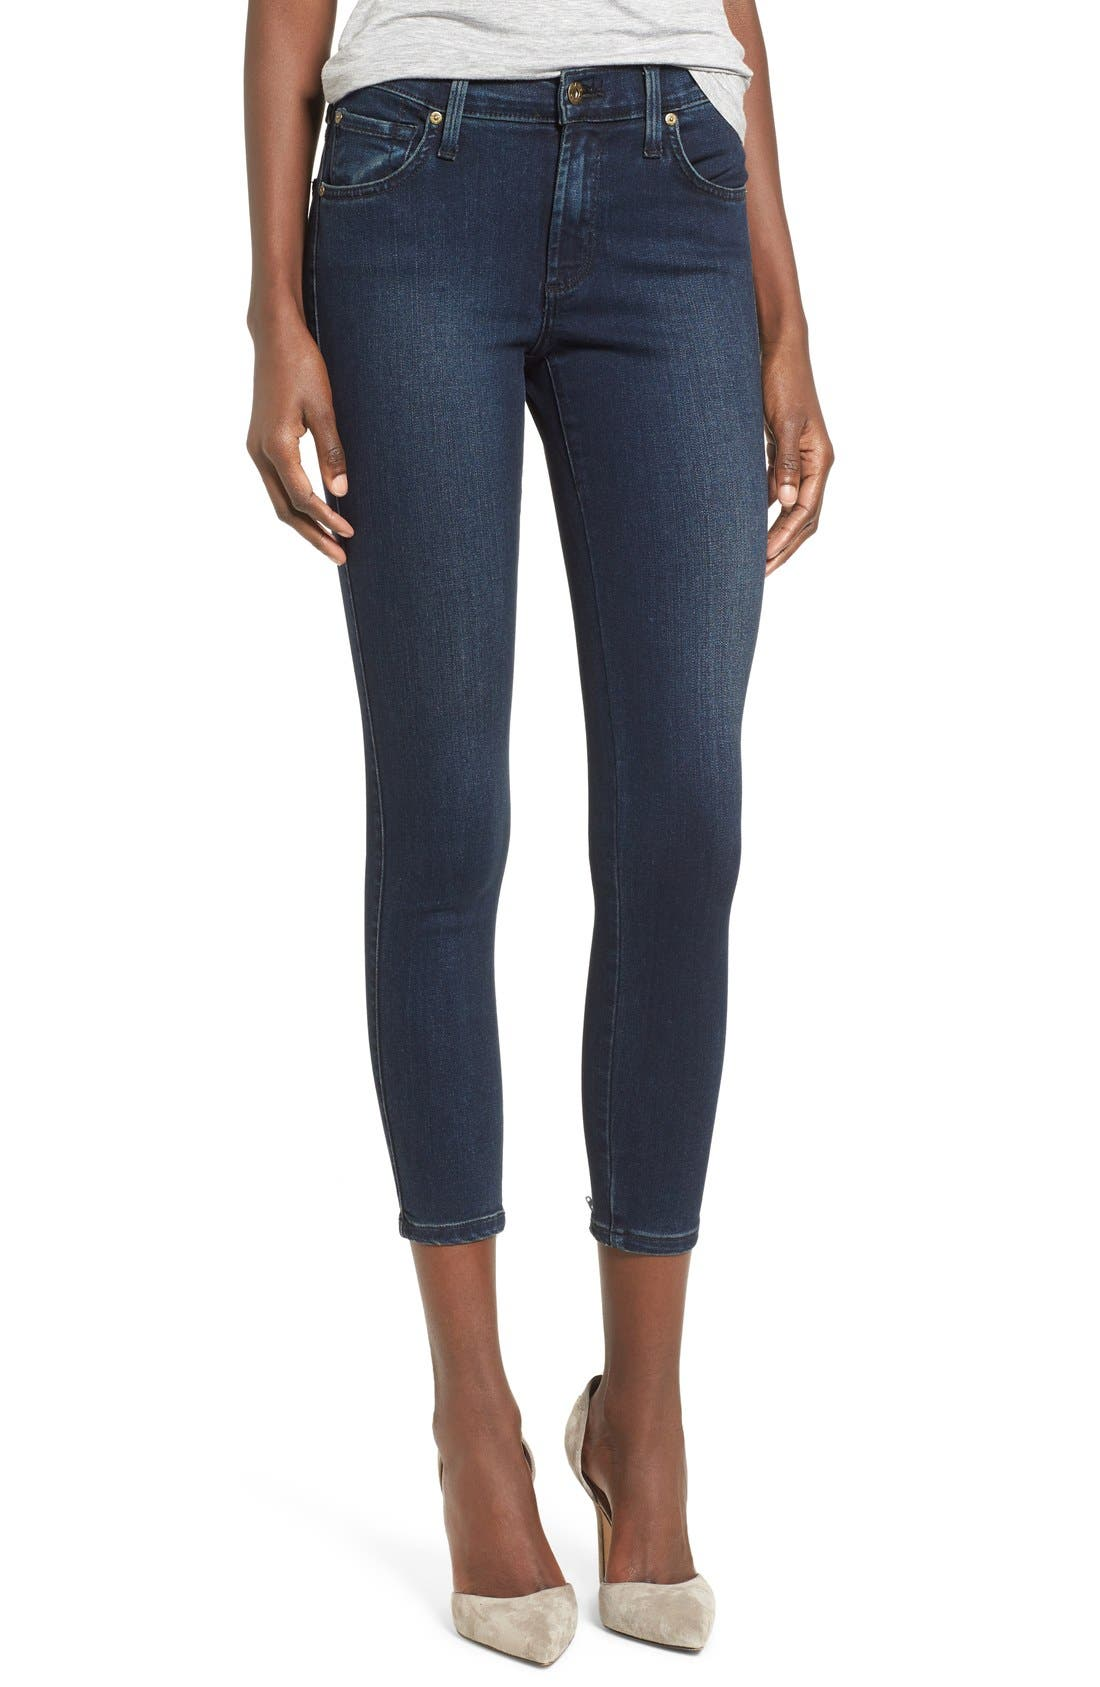 Alternate Image 1 Selected - James Jeans Ankle Zip Skinny Jeans